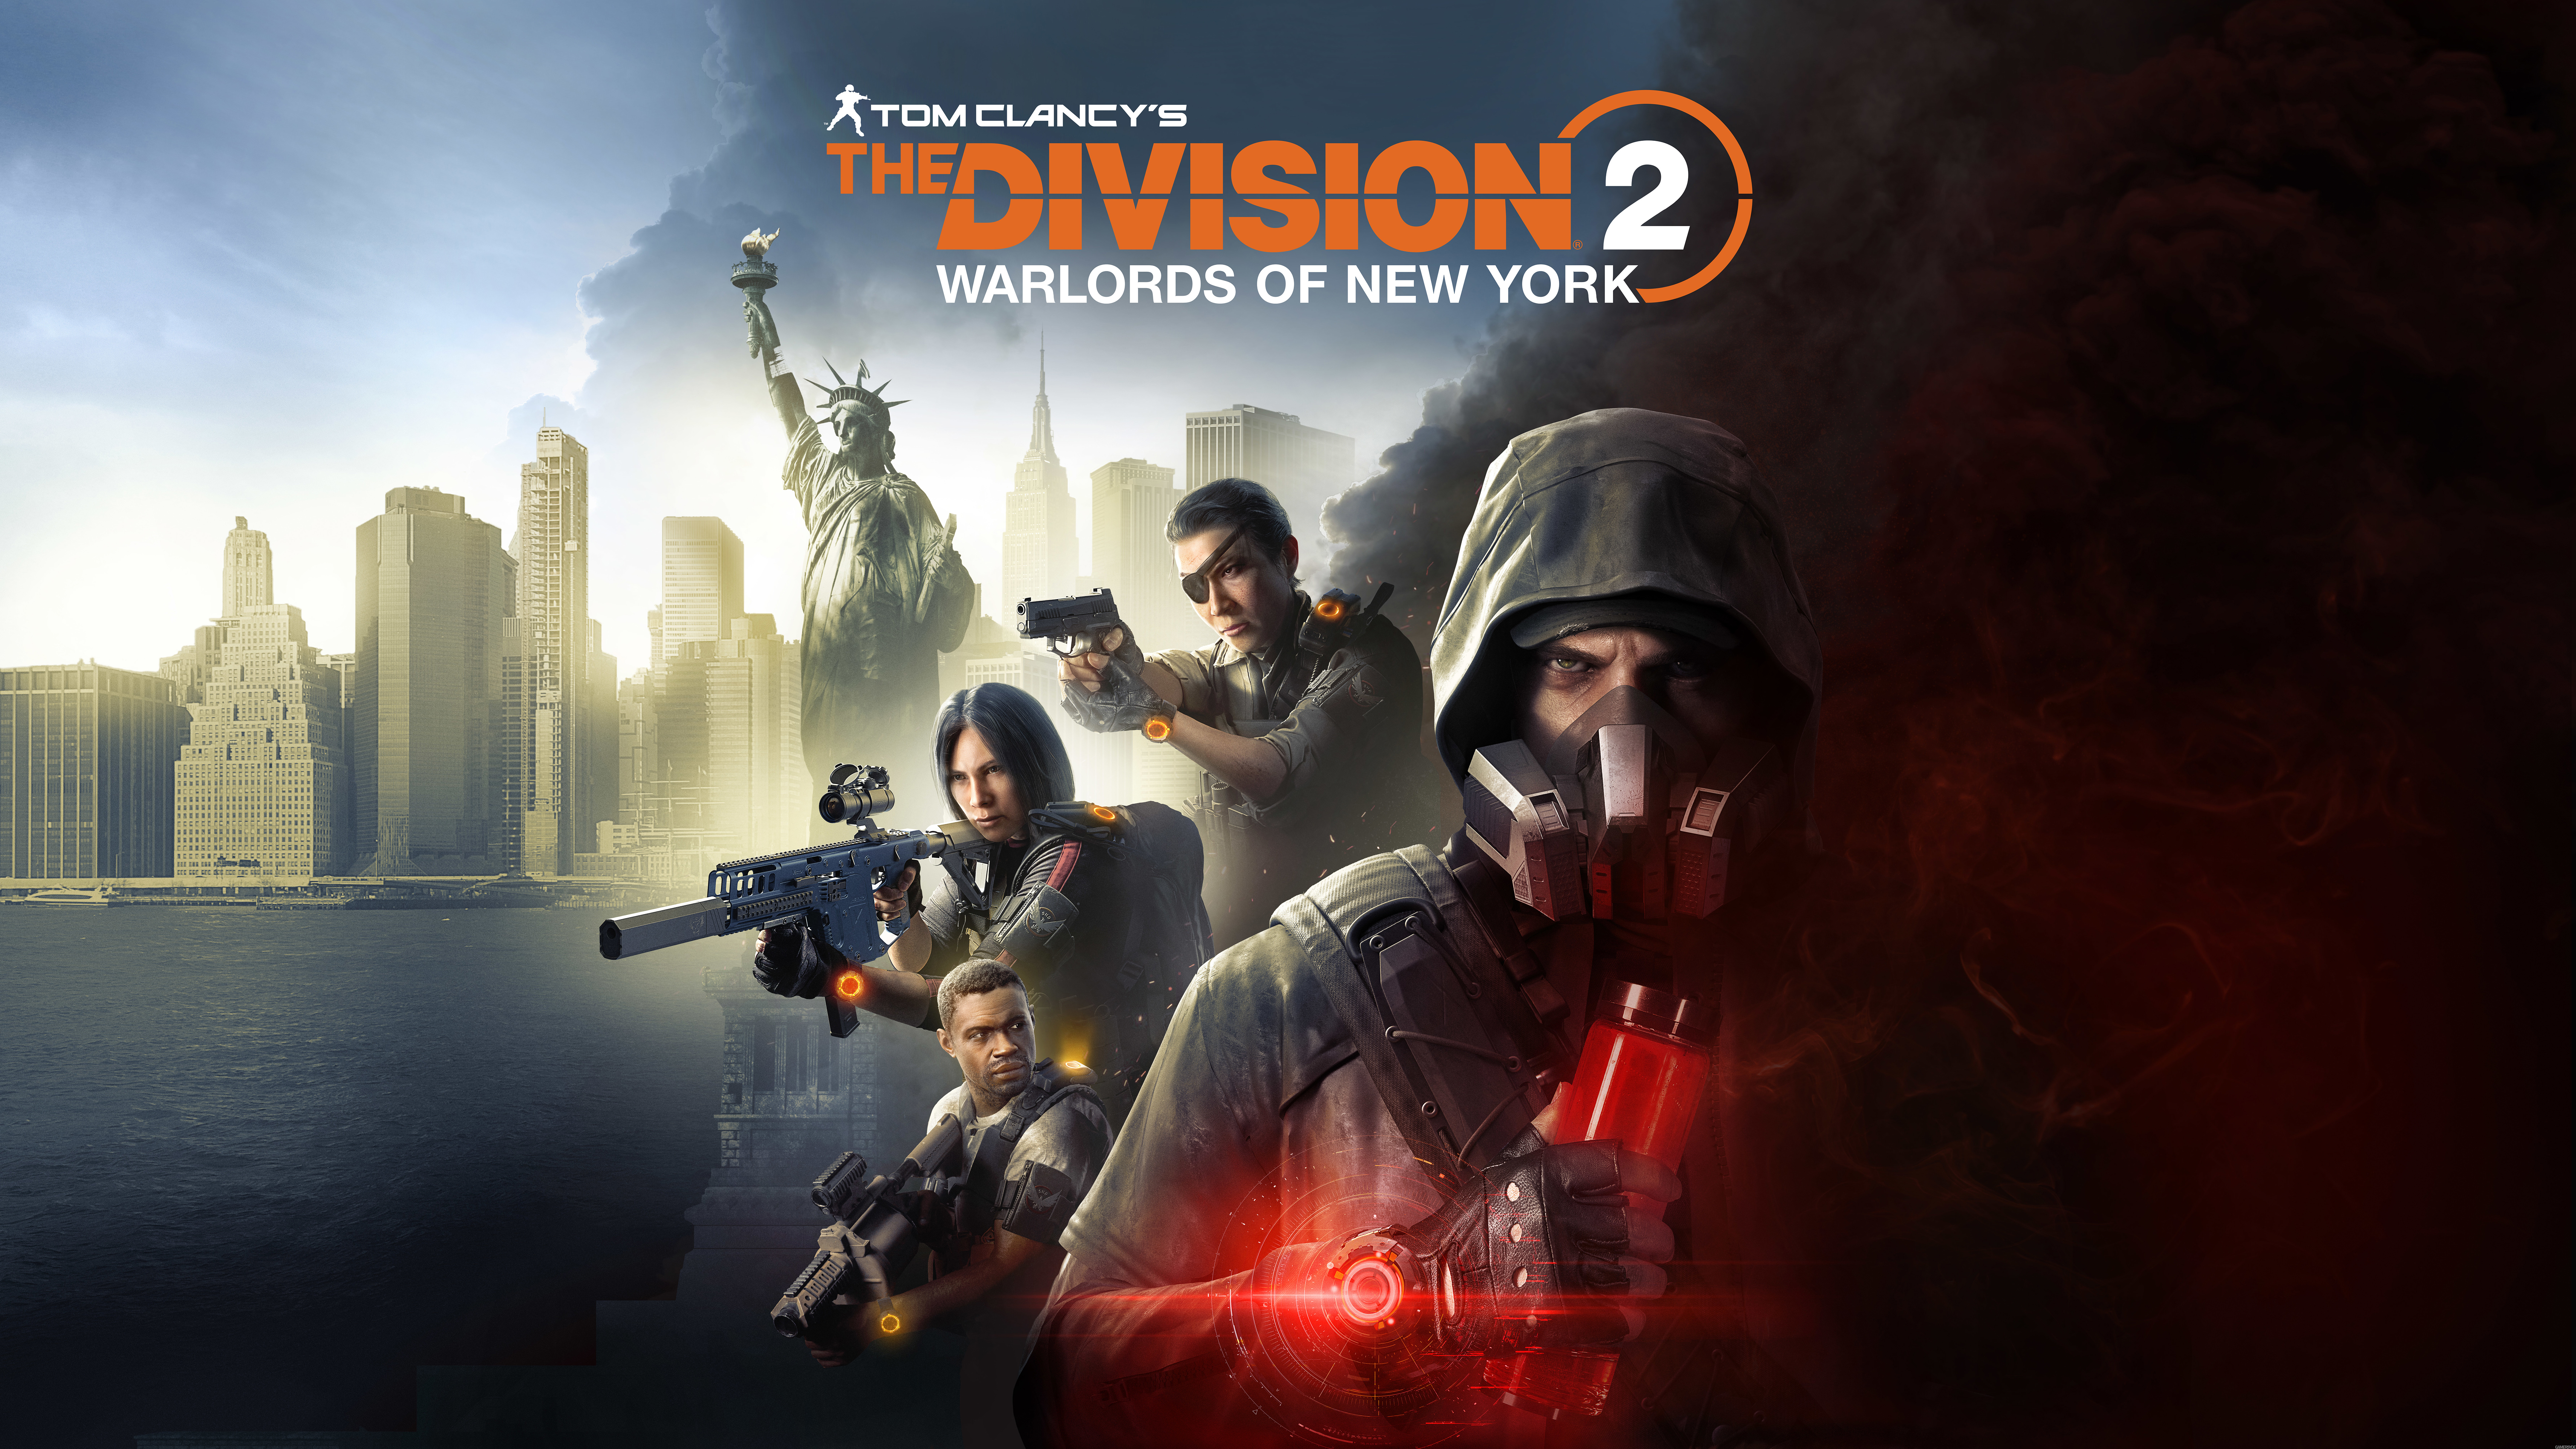 Tom Clancys The Division 2 4K 8K Wallpapers | HD Wallpapers